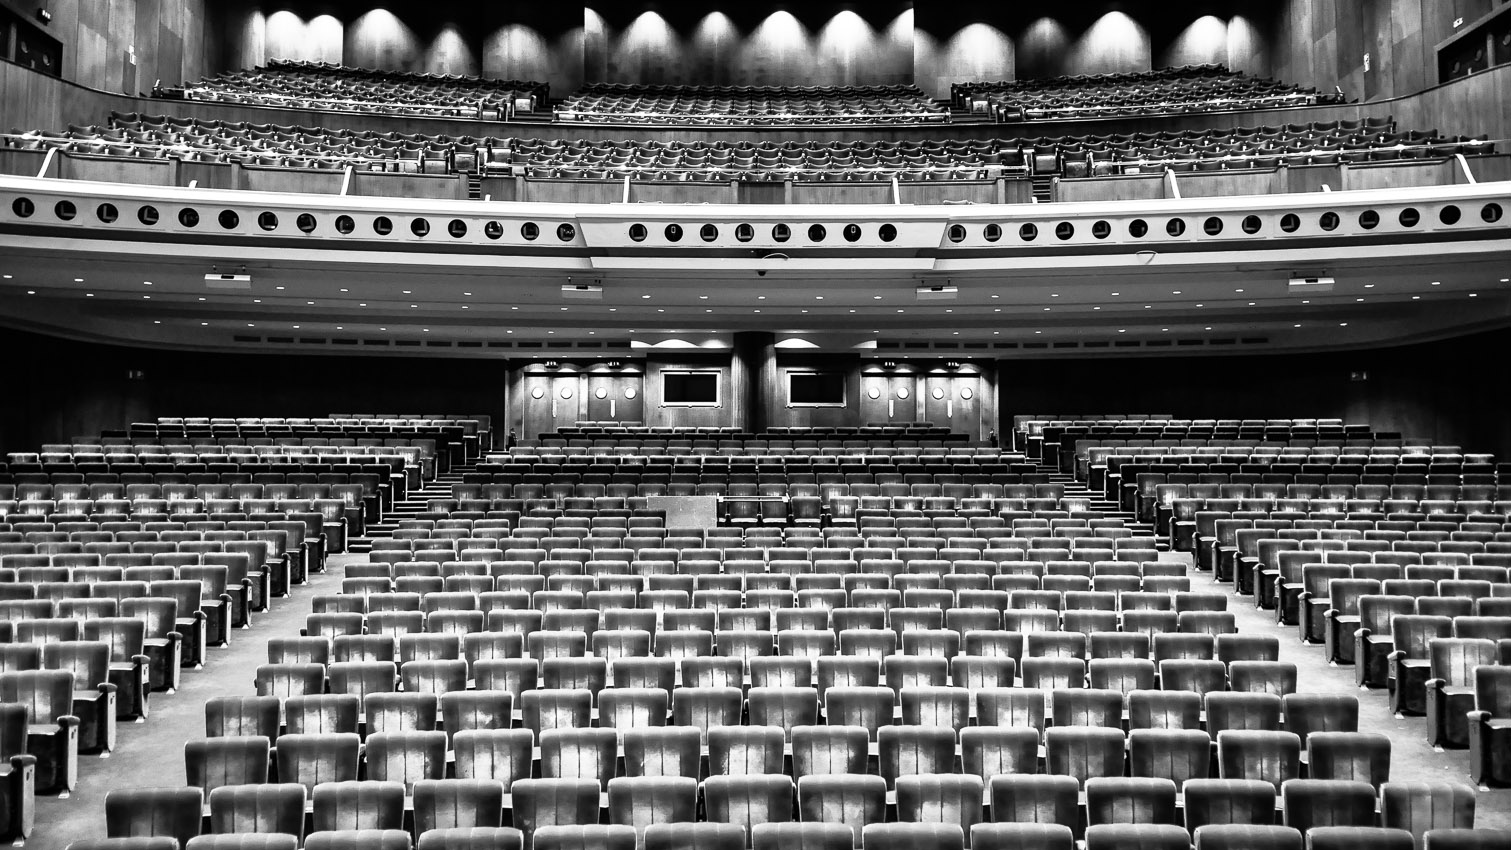 05-salle-theatre-concert-location-decors-film-cinema-photo-belgium-bruxelles